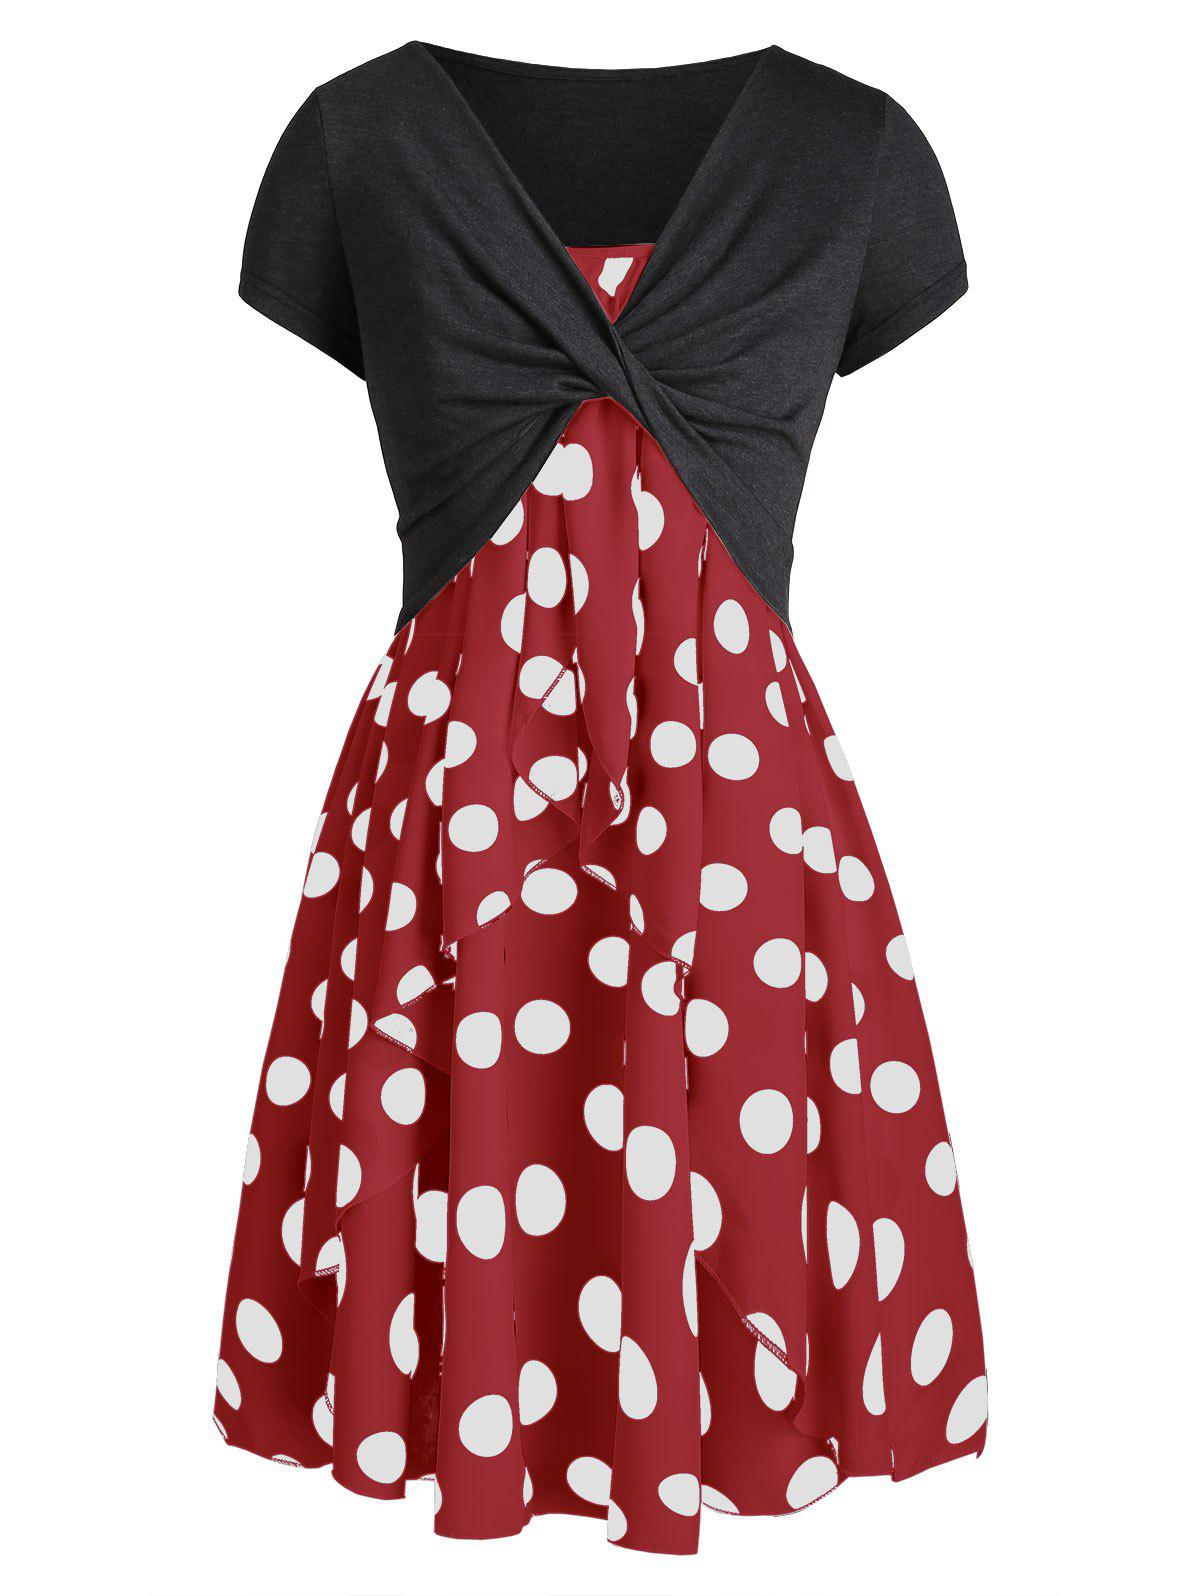 Polka Dot Cami Dress with Plunging T-shirt - LAVA RED S